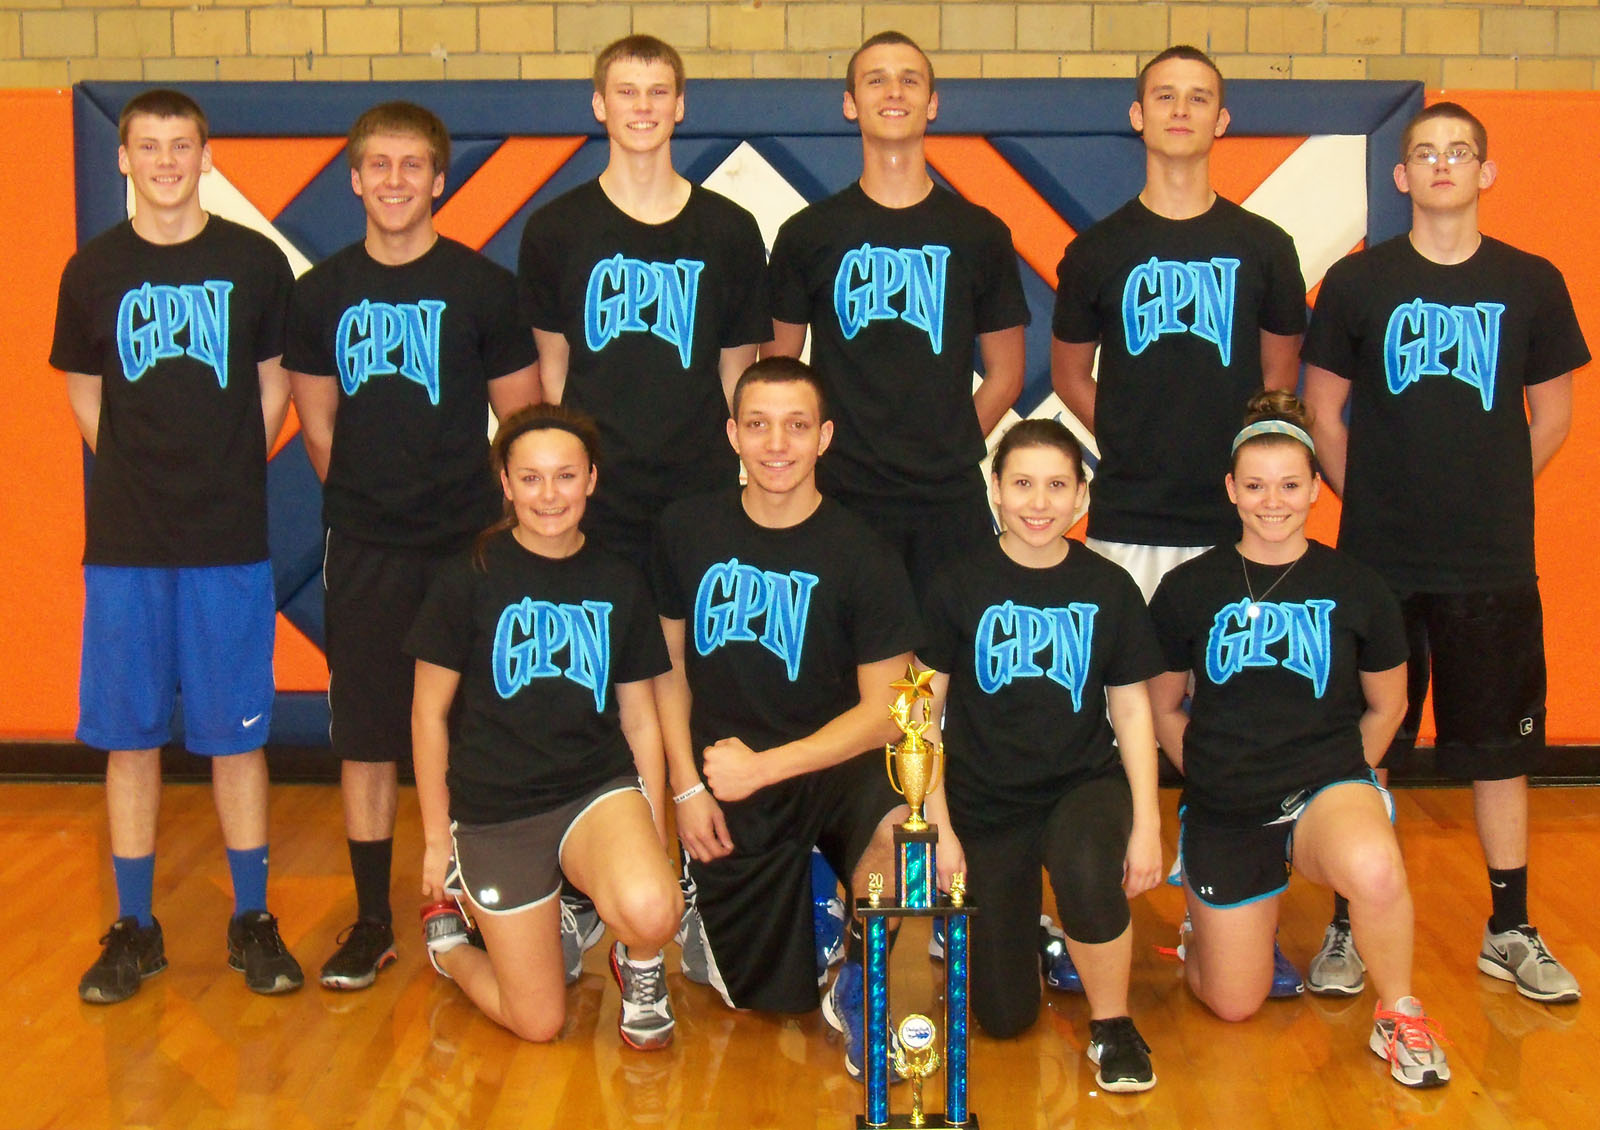 GPN wins Post Prom Dodgeball Tourney